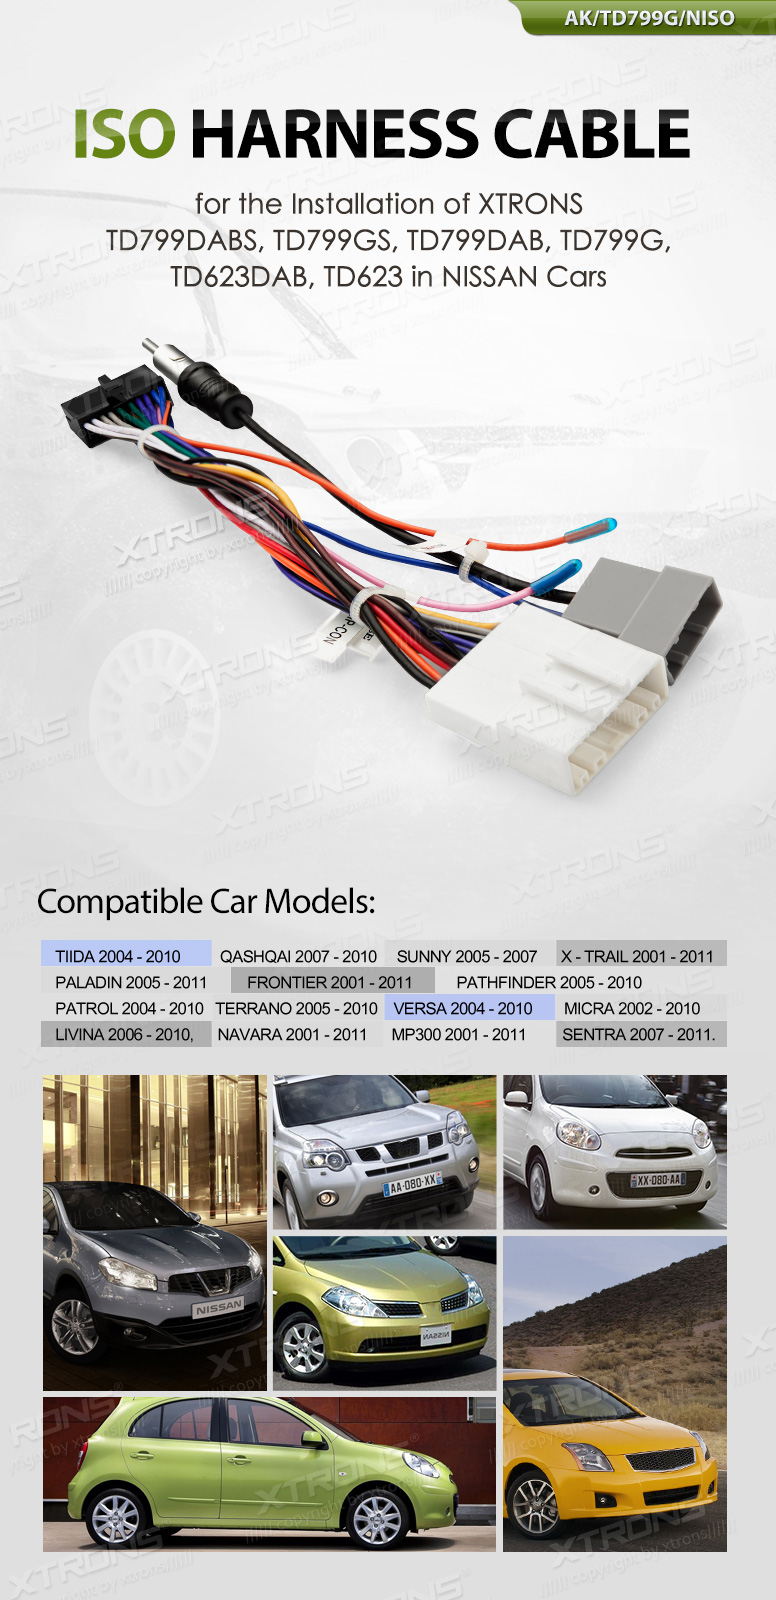 medium resolution of car stereo radio iso lead wiring harness cable for nissan cars td799dab td799g